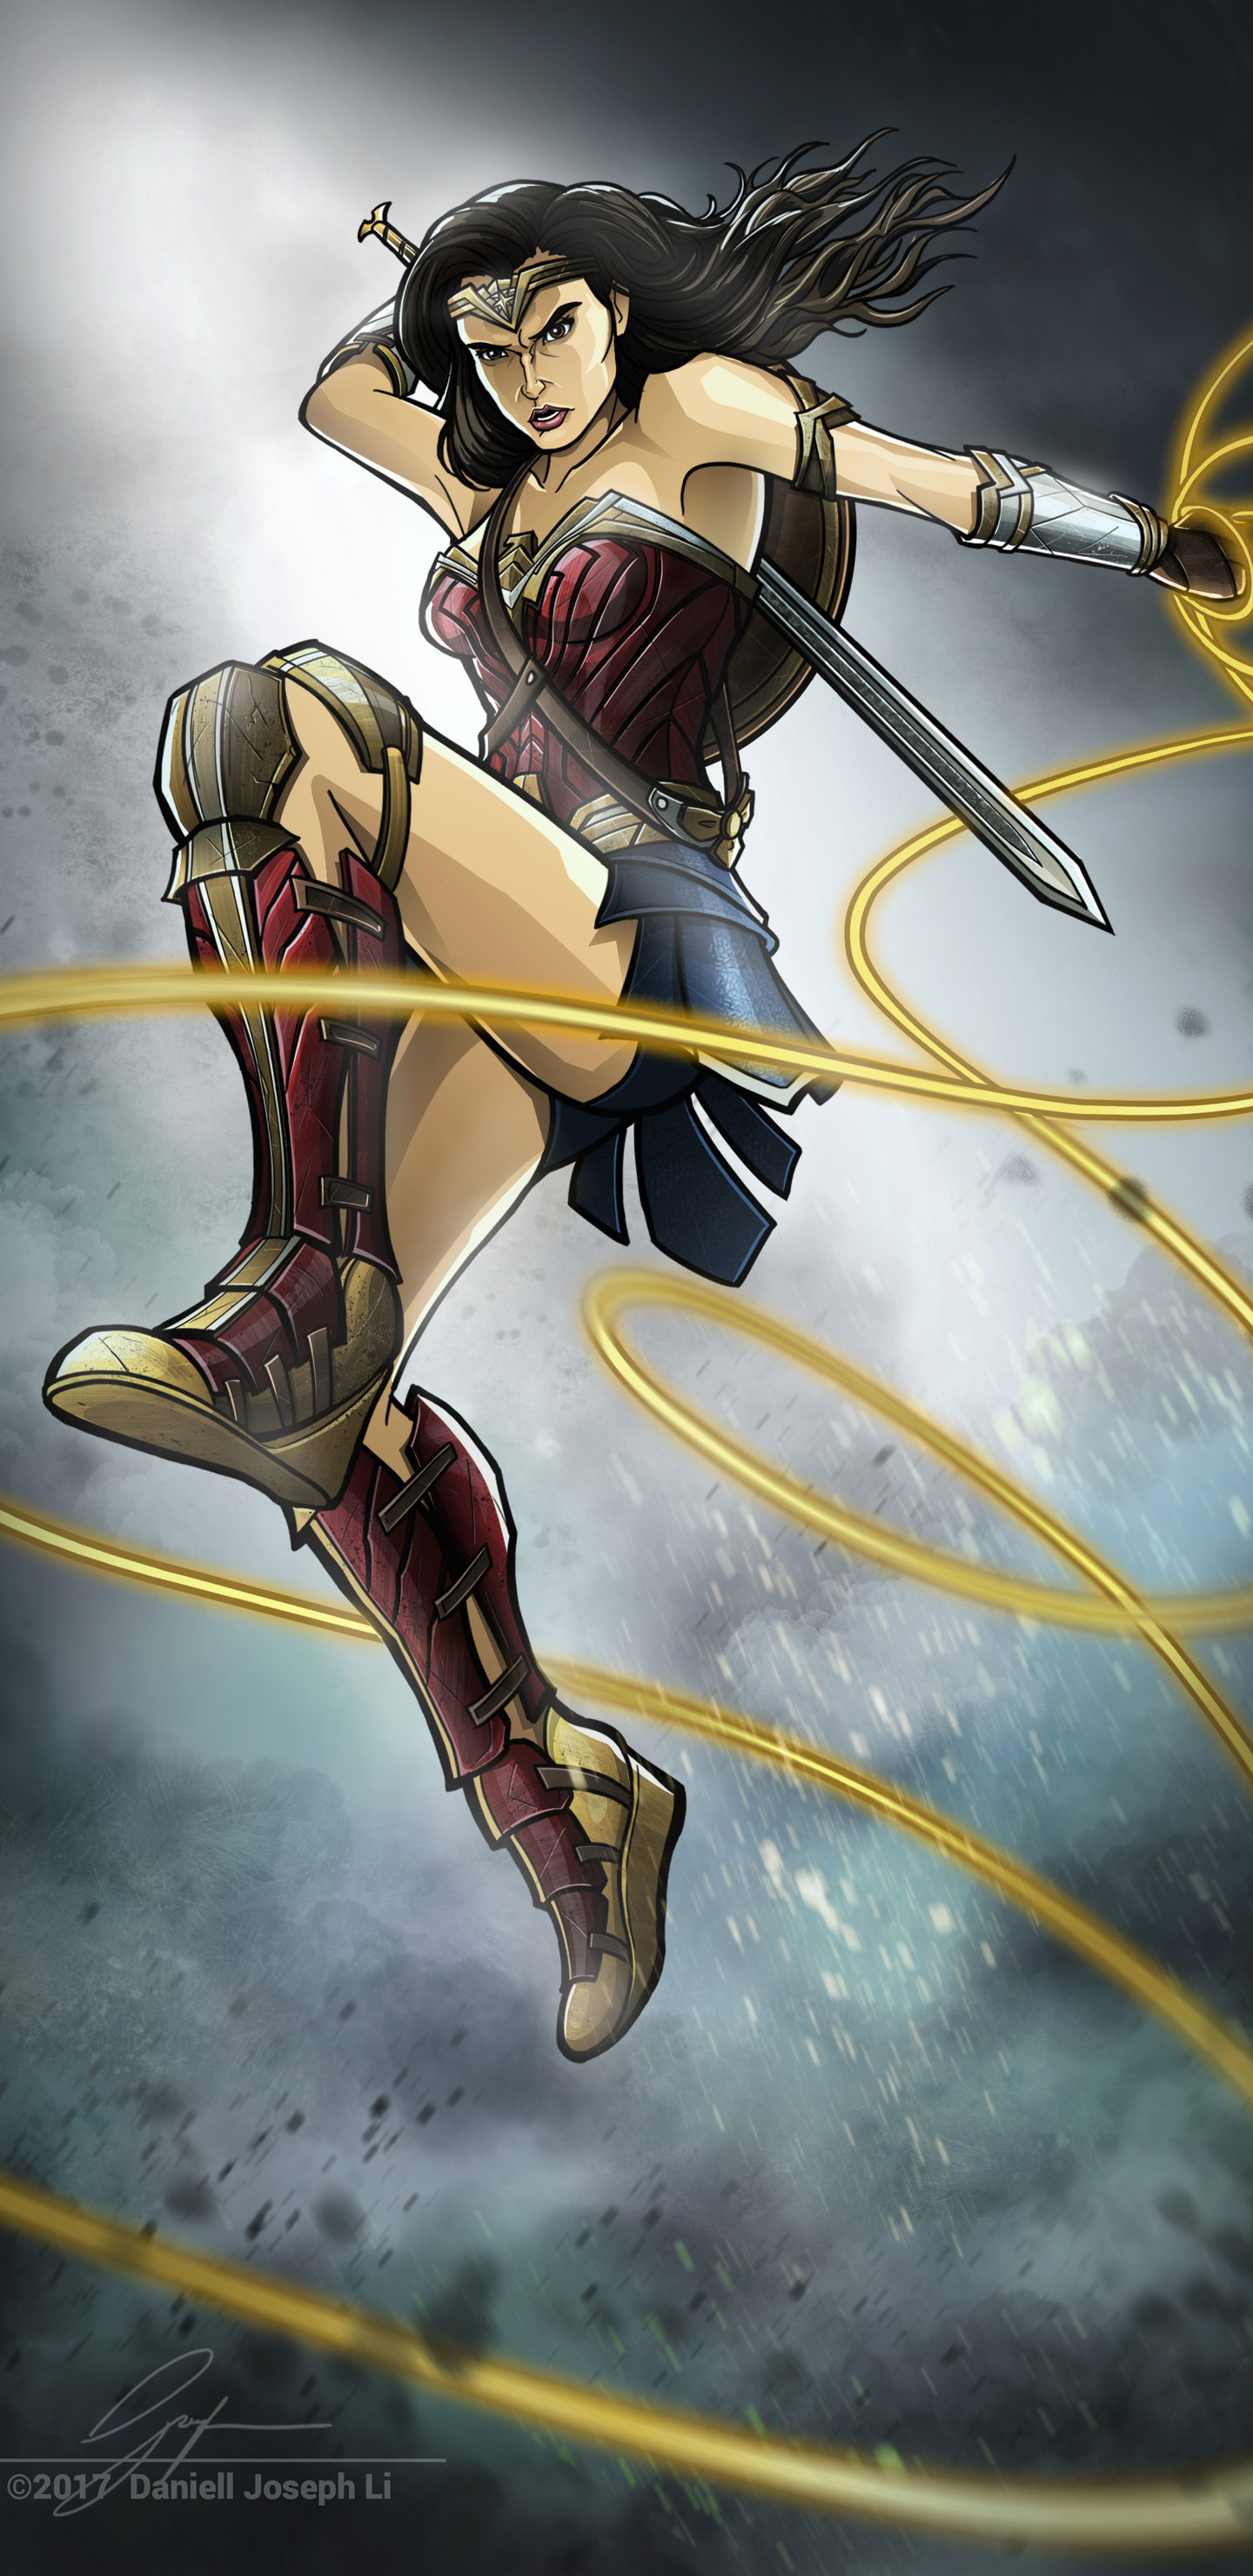 warrior-wonder-woman-7i.jpg